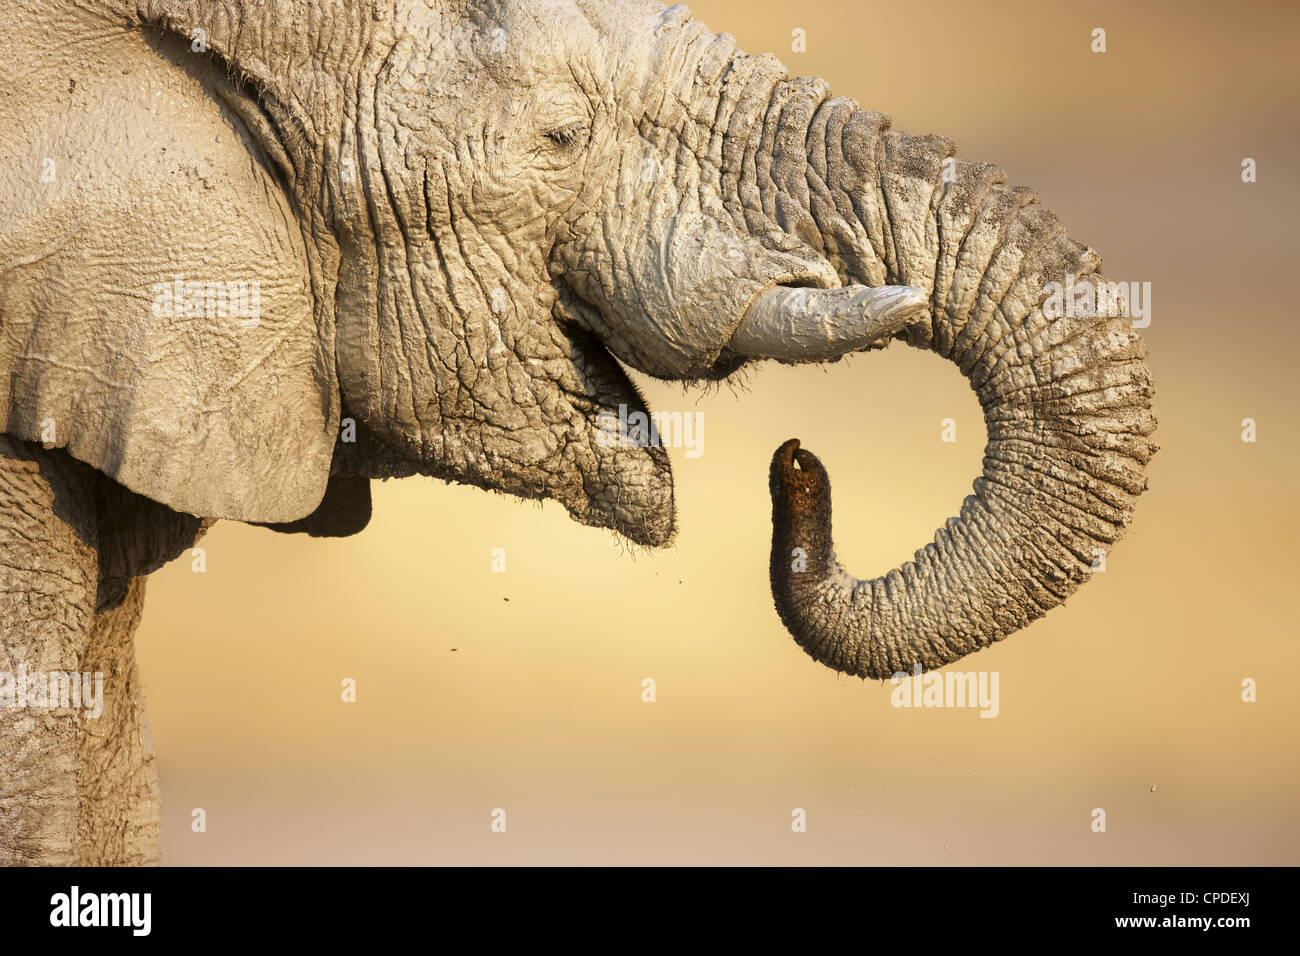 Close-up view of a muddy elephant drinking water in Etosha - Stock Image